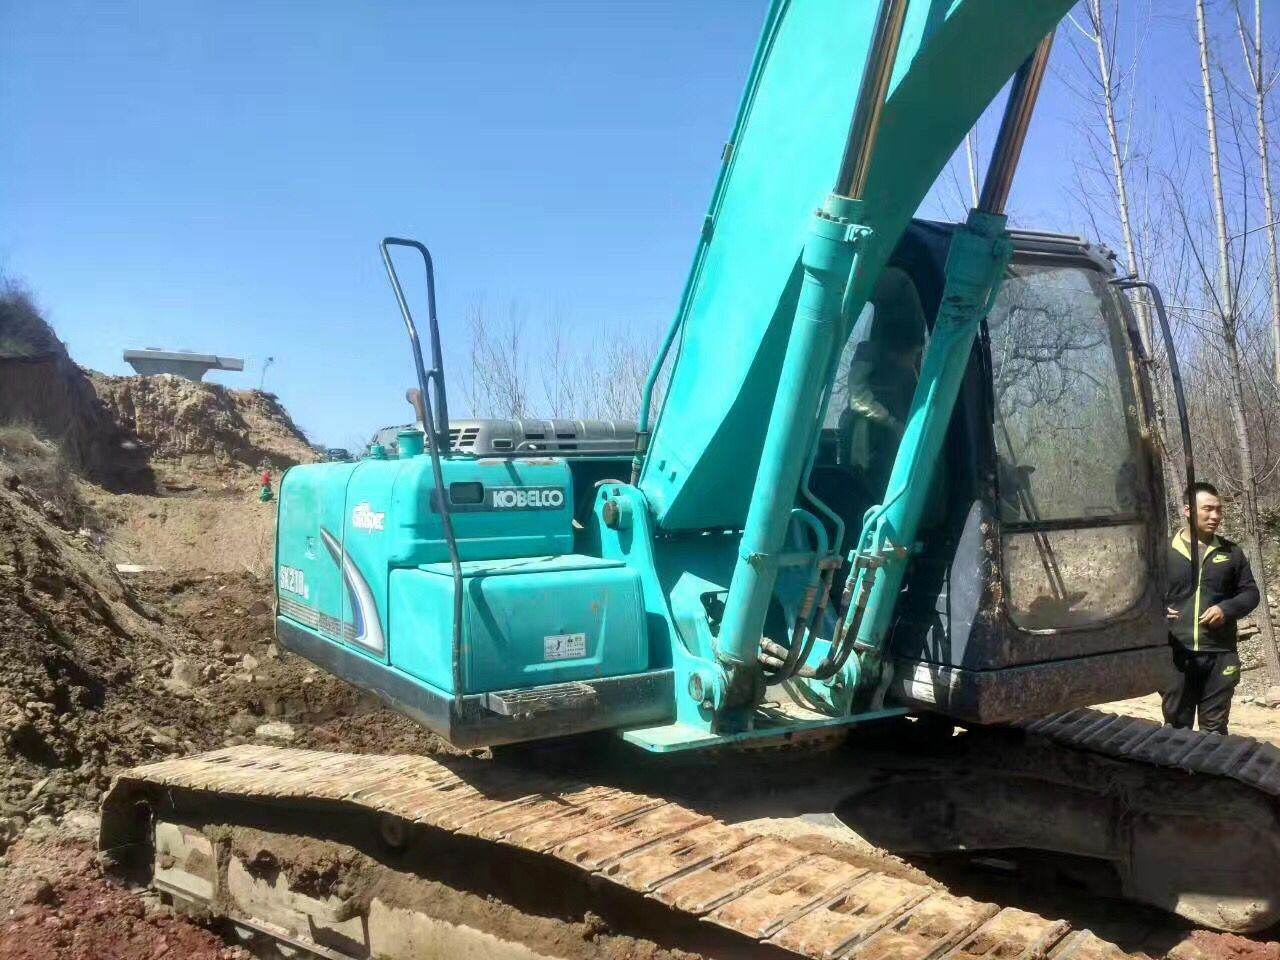 Very Good Working Condition Used Crawler Excavator Kobelco Sk210-8 (made in 2010) for Sale